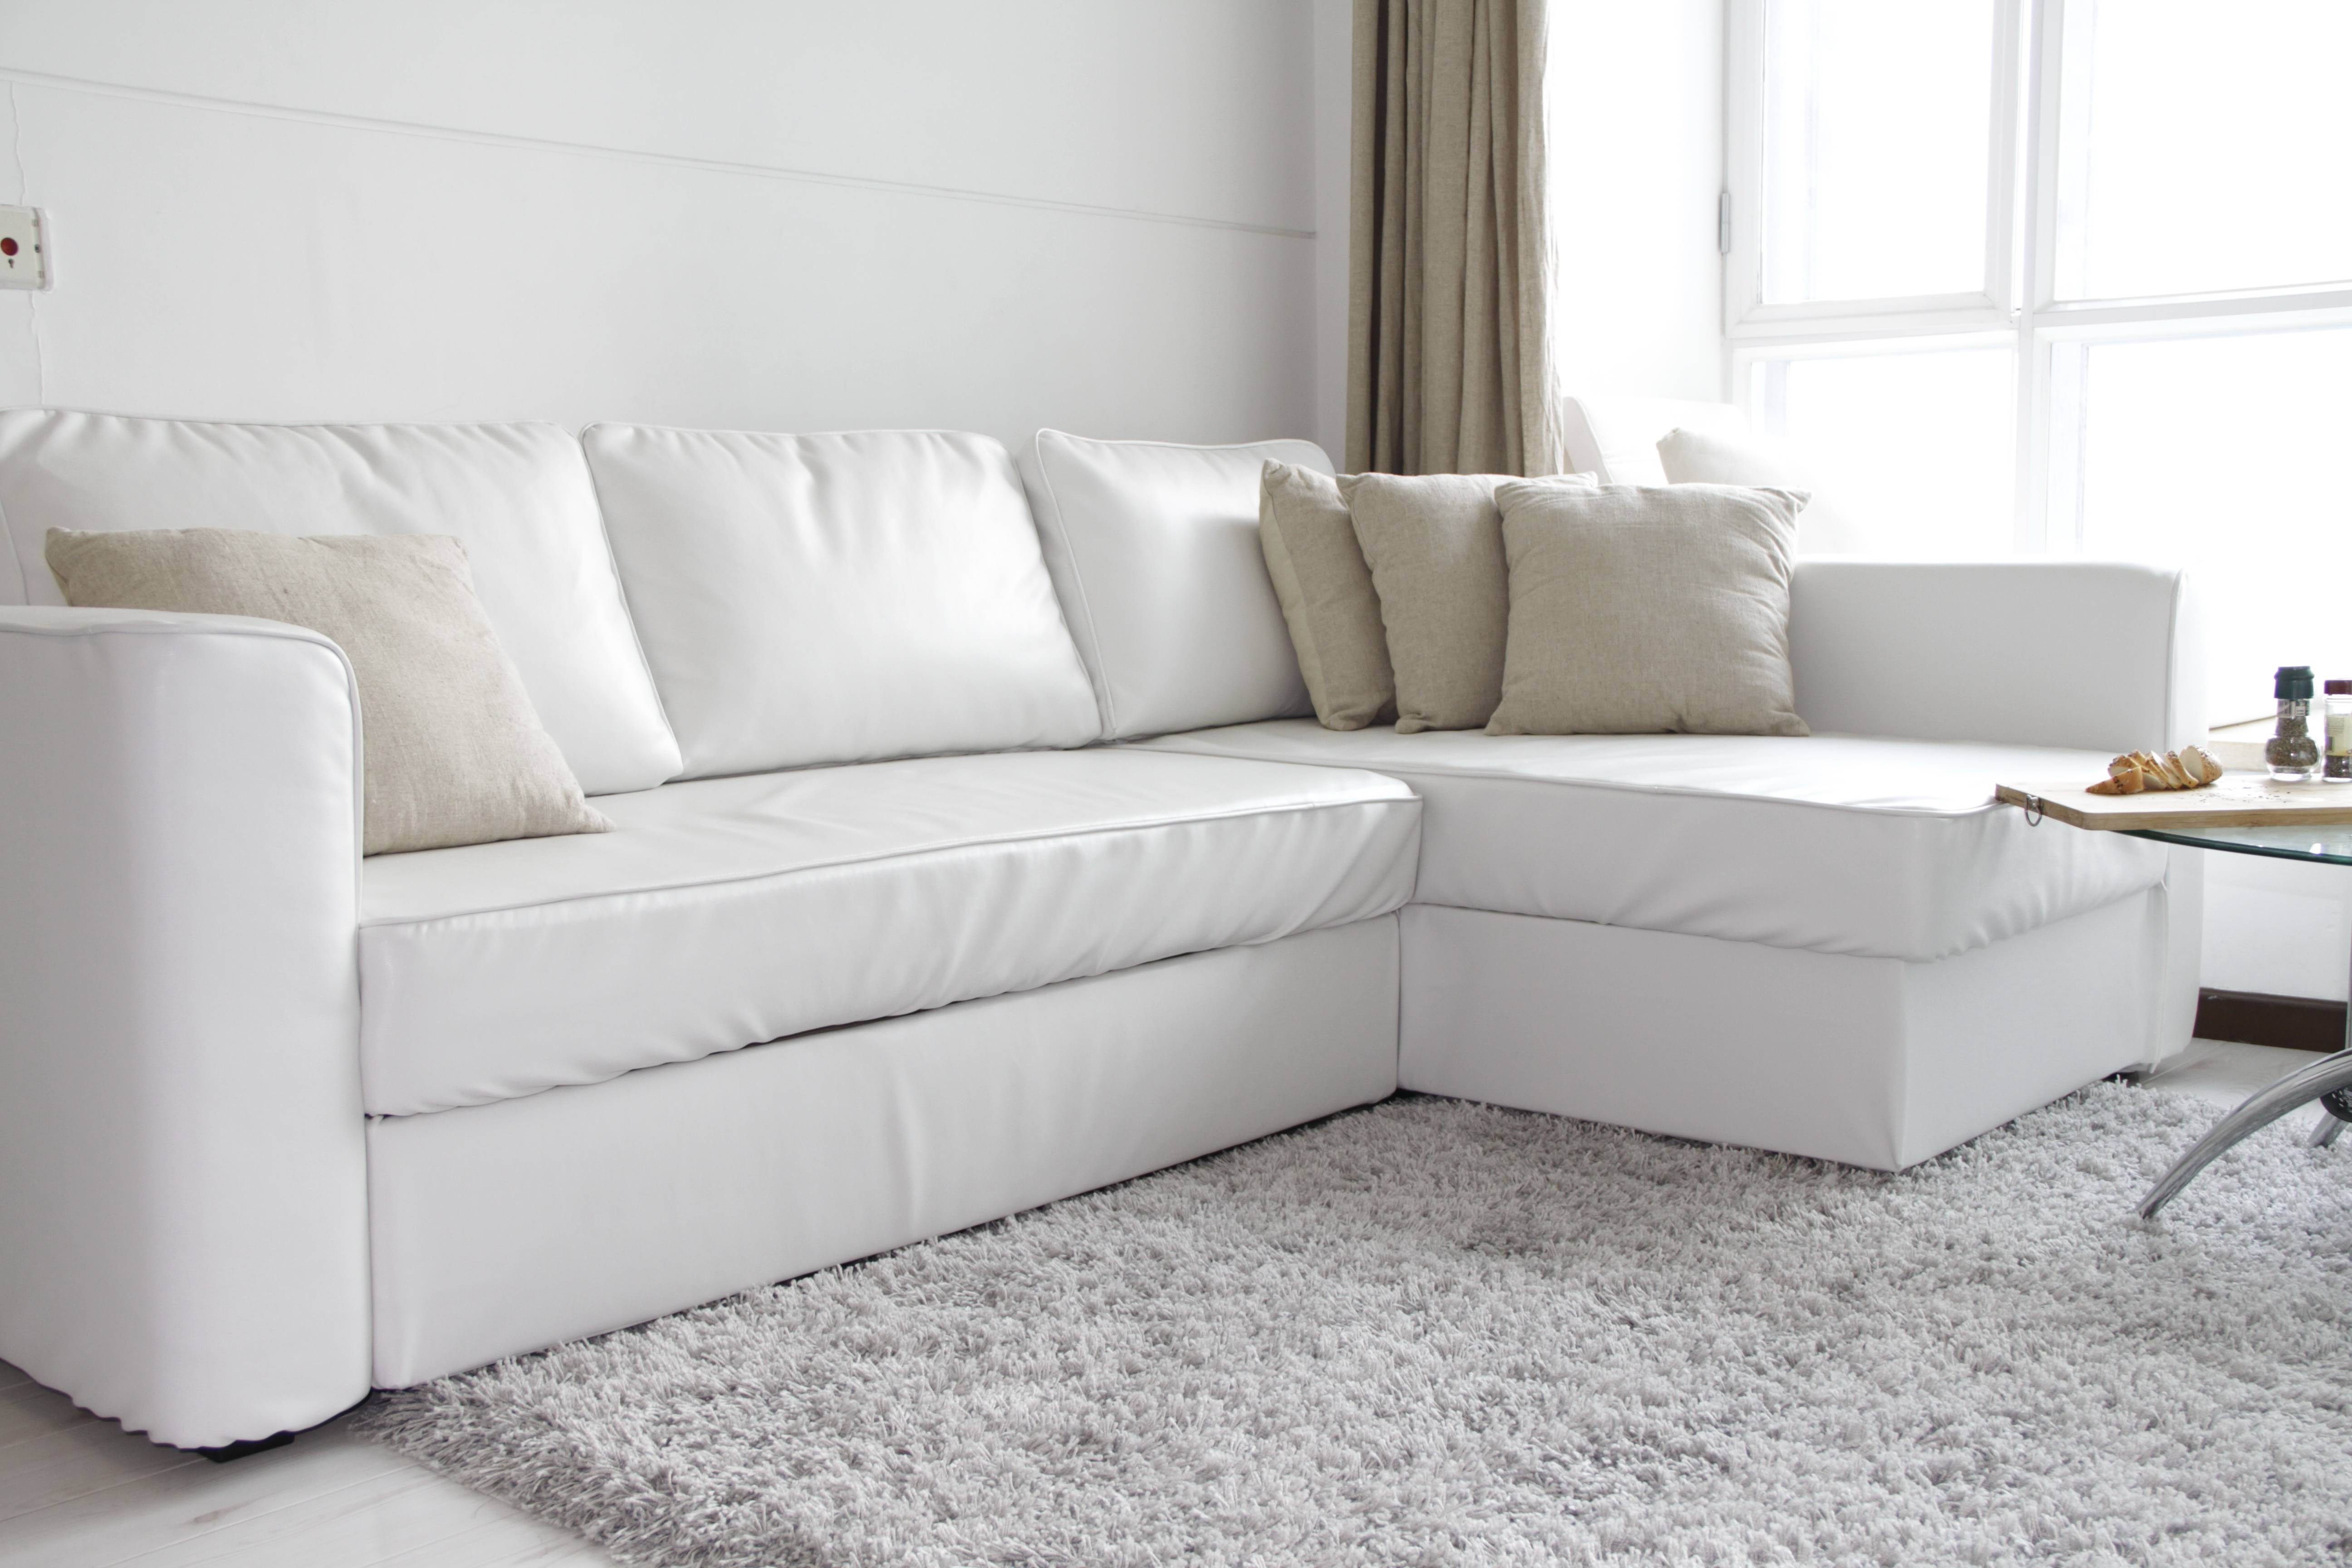 11 Ways Your Ikea Sofa Can Look A Million Bucks throughout Lillberg Sofa Covers (Image 1 of 30)